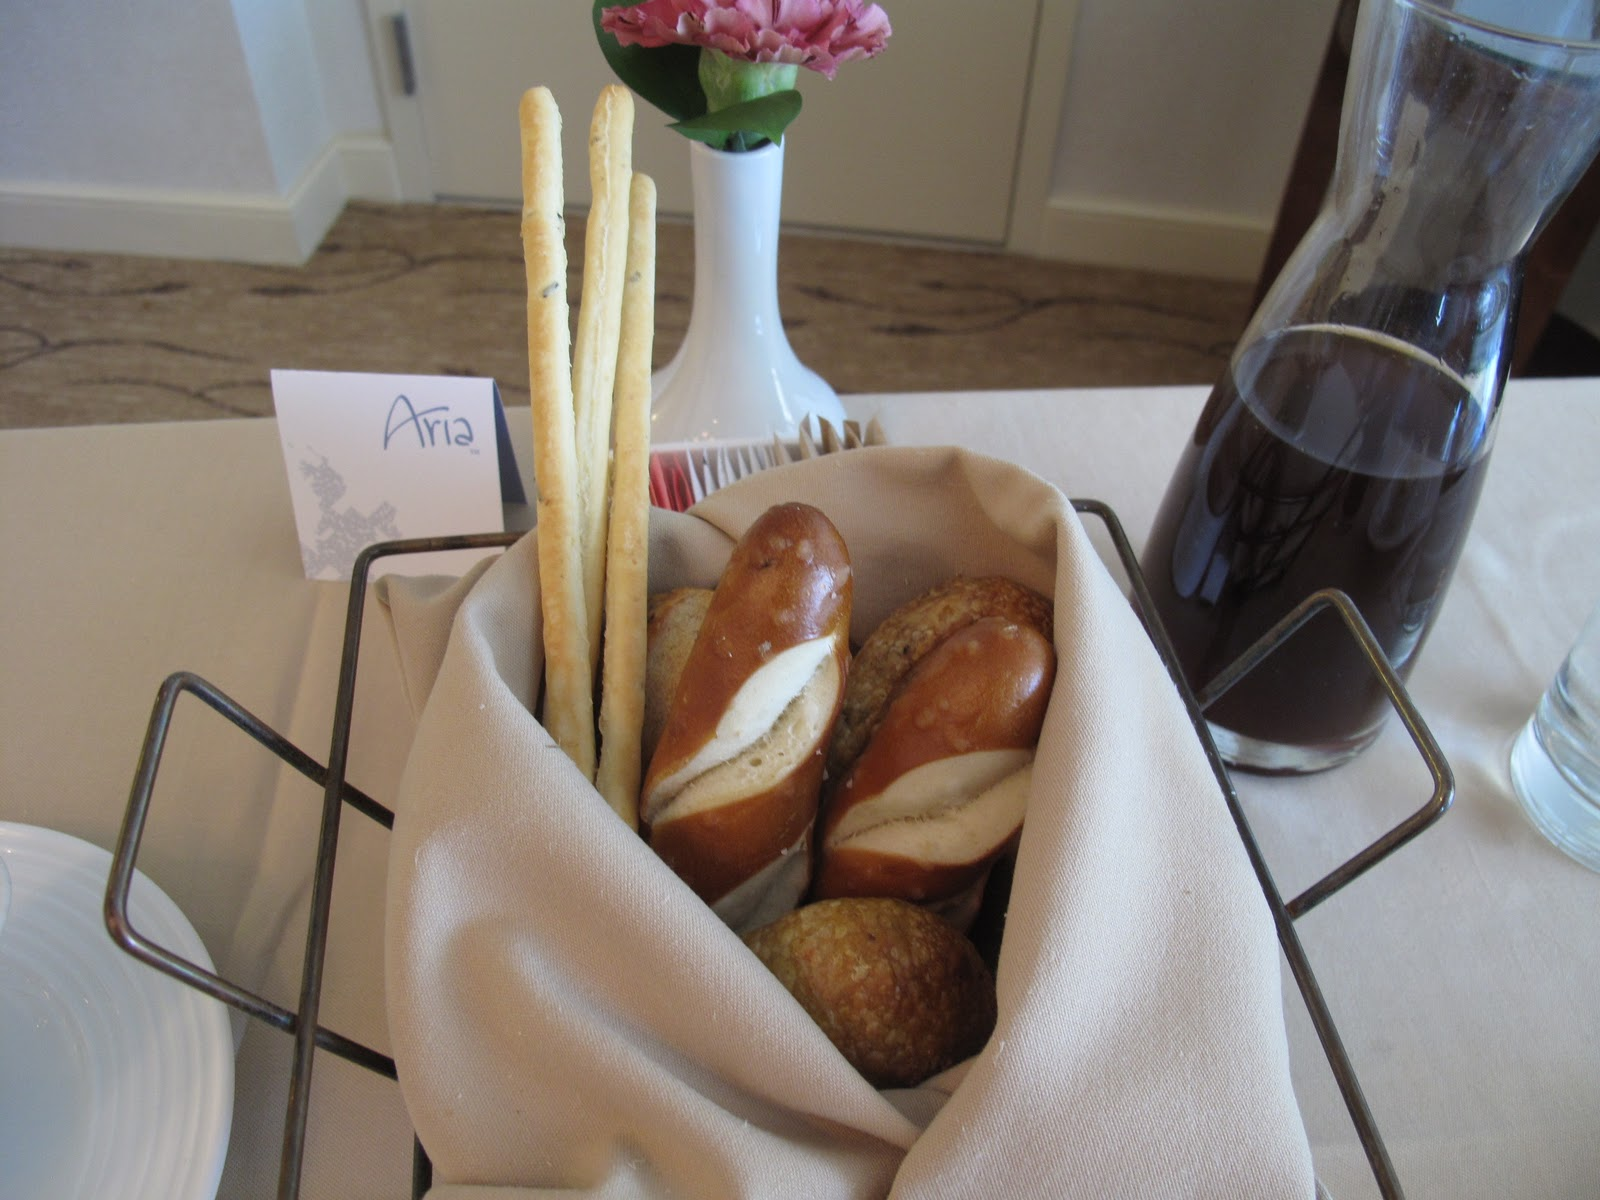 The Breadsticks And Pretzel Bread That Aria Room Service Always Brings Is  Yummy. Hereu0027s A Tip About Their Ice Tea, If You Order A Glass They Still  Bring It ... Part 62